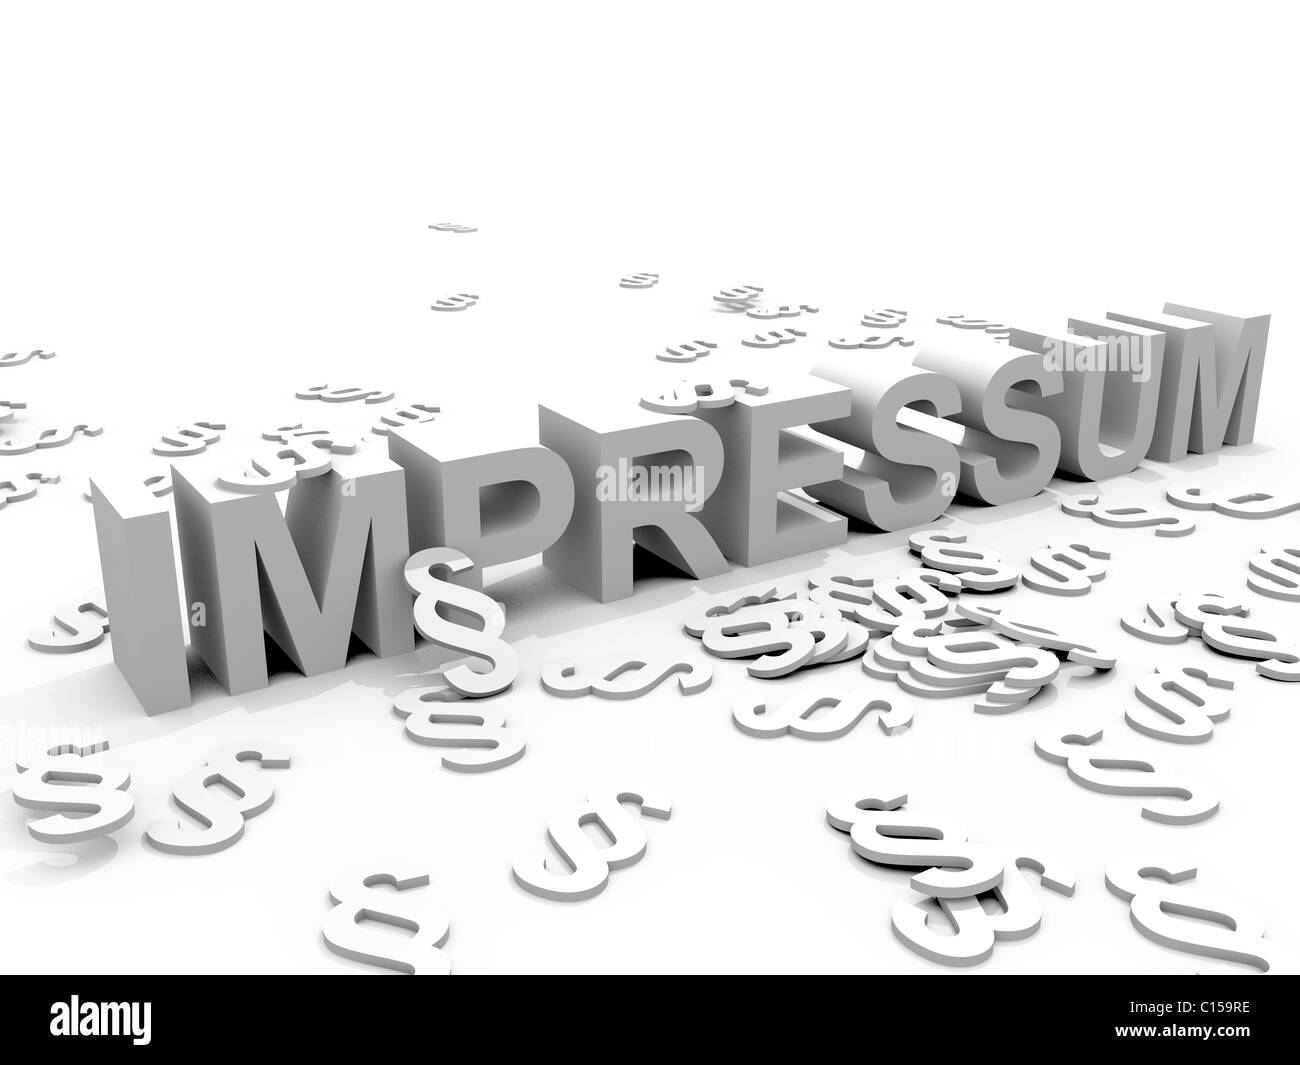 The Word Impressum surrounded by Paragraph signs § - Stock Image